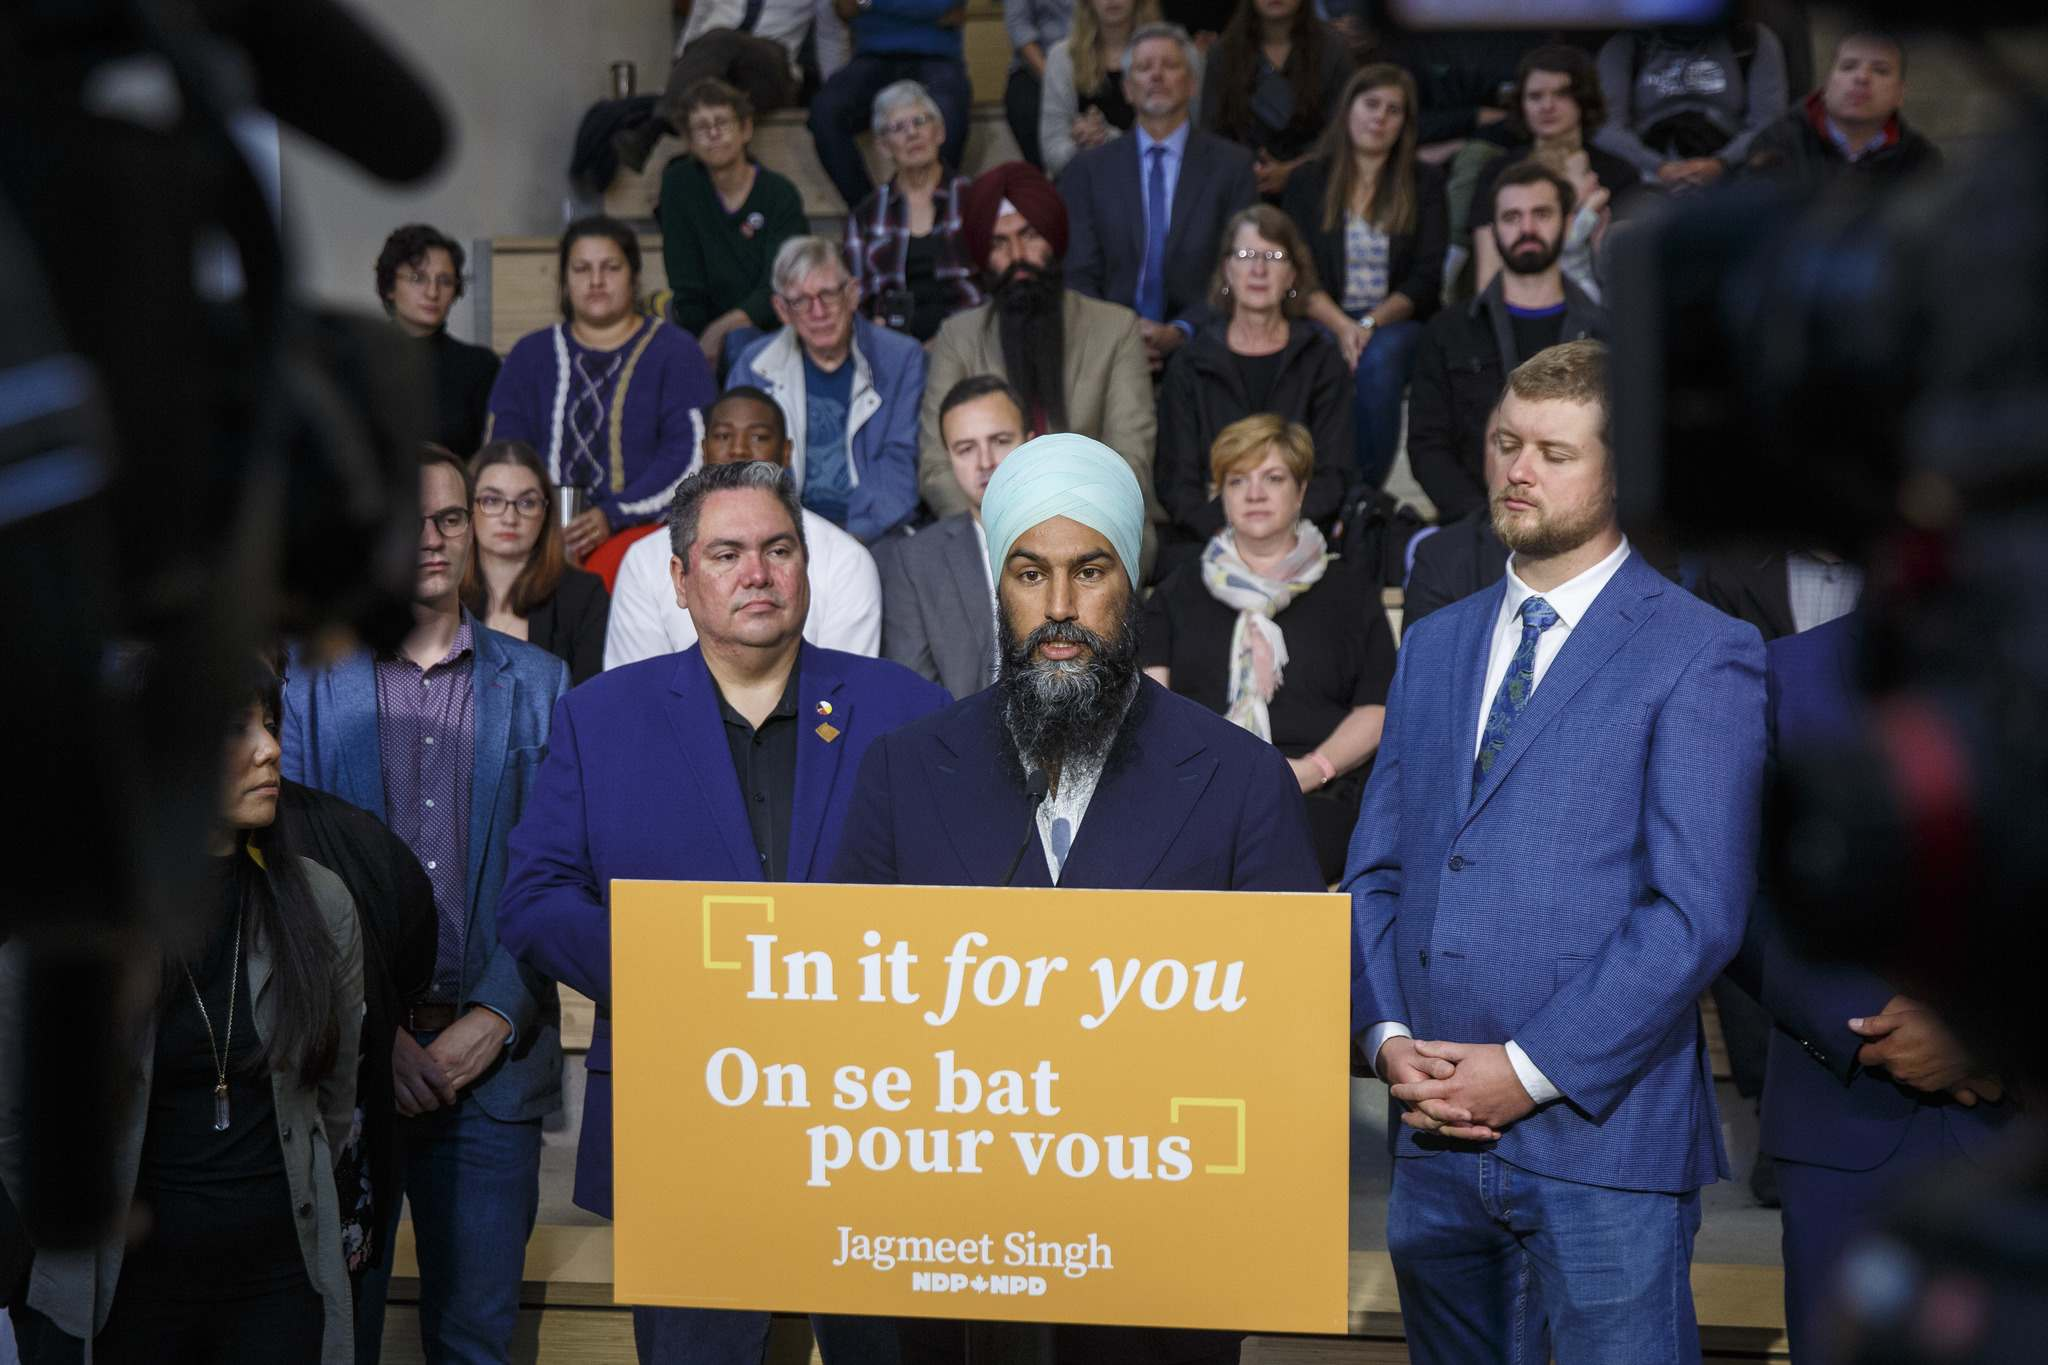 Federal NDP Leader Jagmeet Singh was surrounded by candidates and supporters Tuesday during a stop at the University of Winnipeg. (Mike Deal / Winnipeg Free Press)</p>